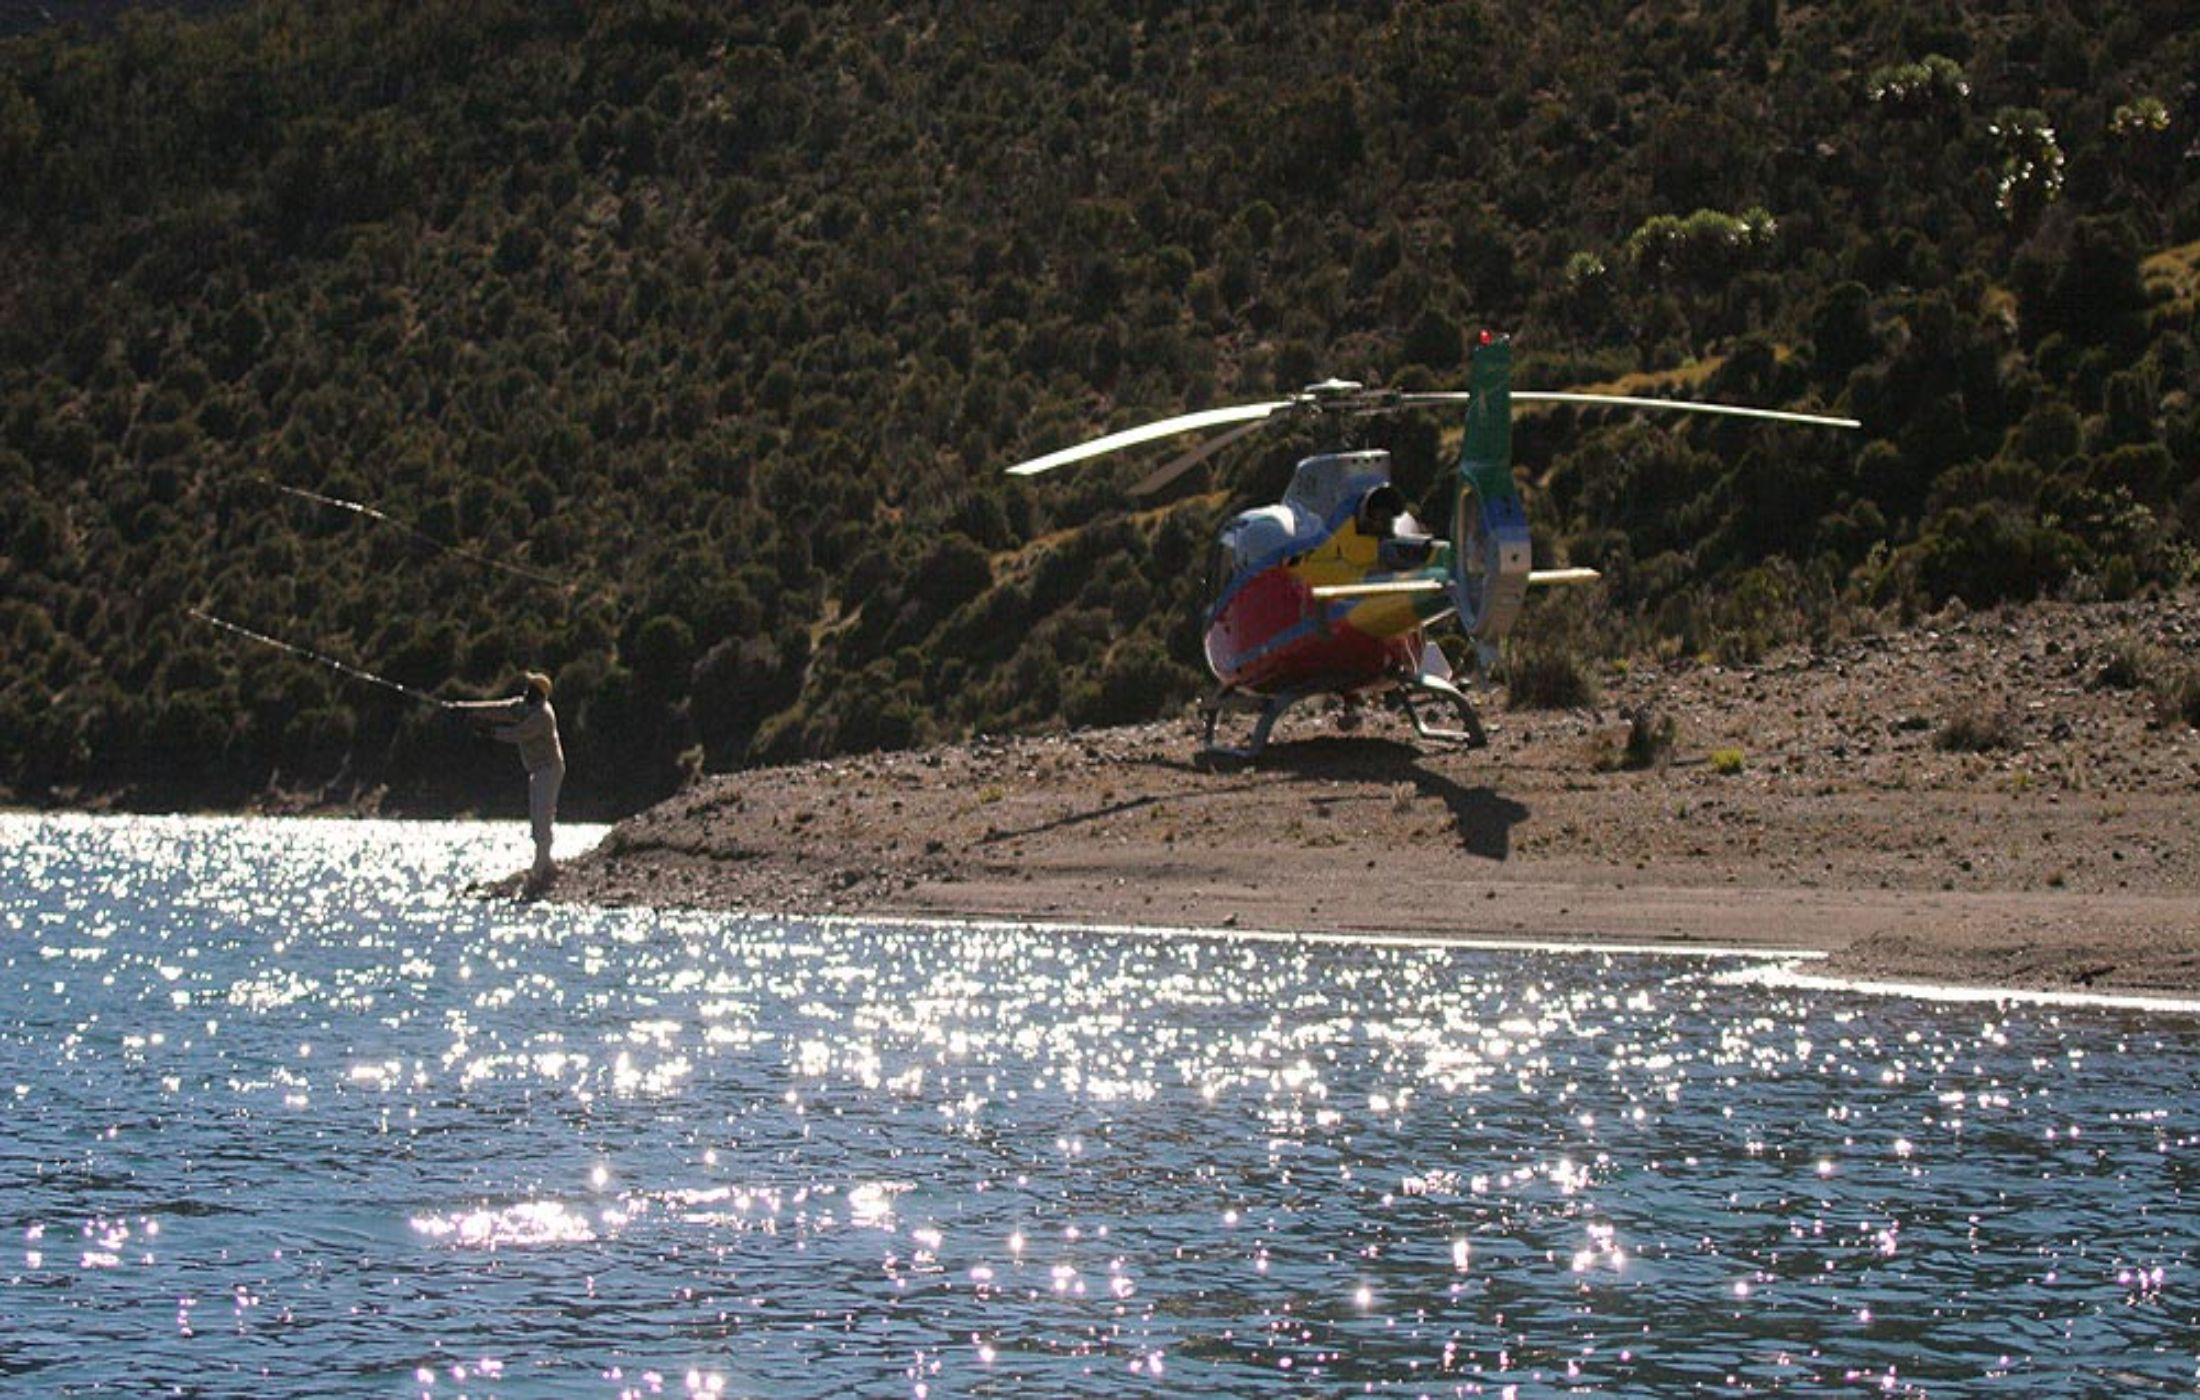 A helicopter over water with a person fishing nearby.